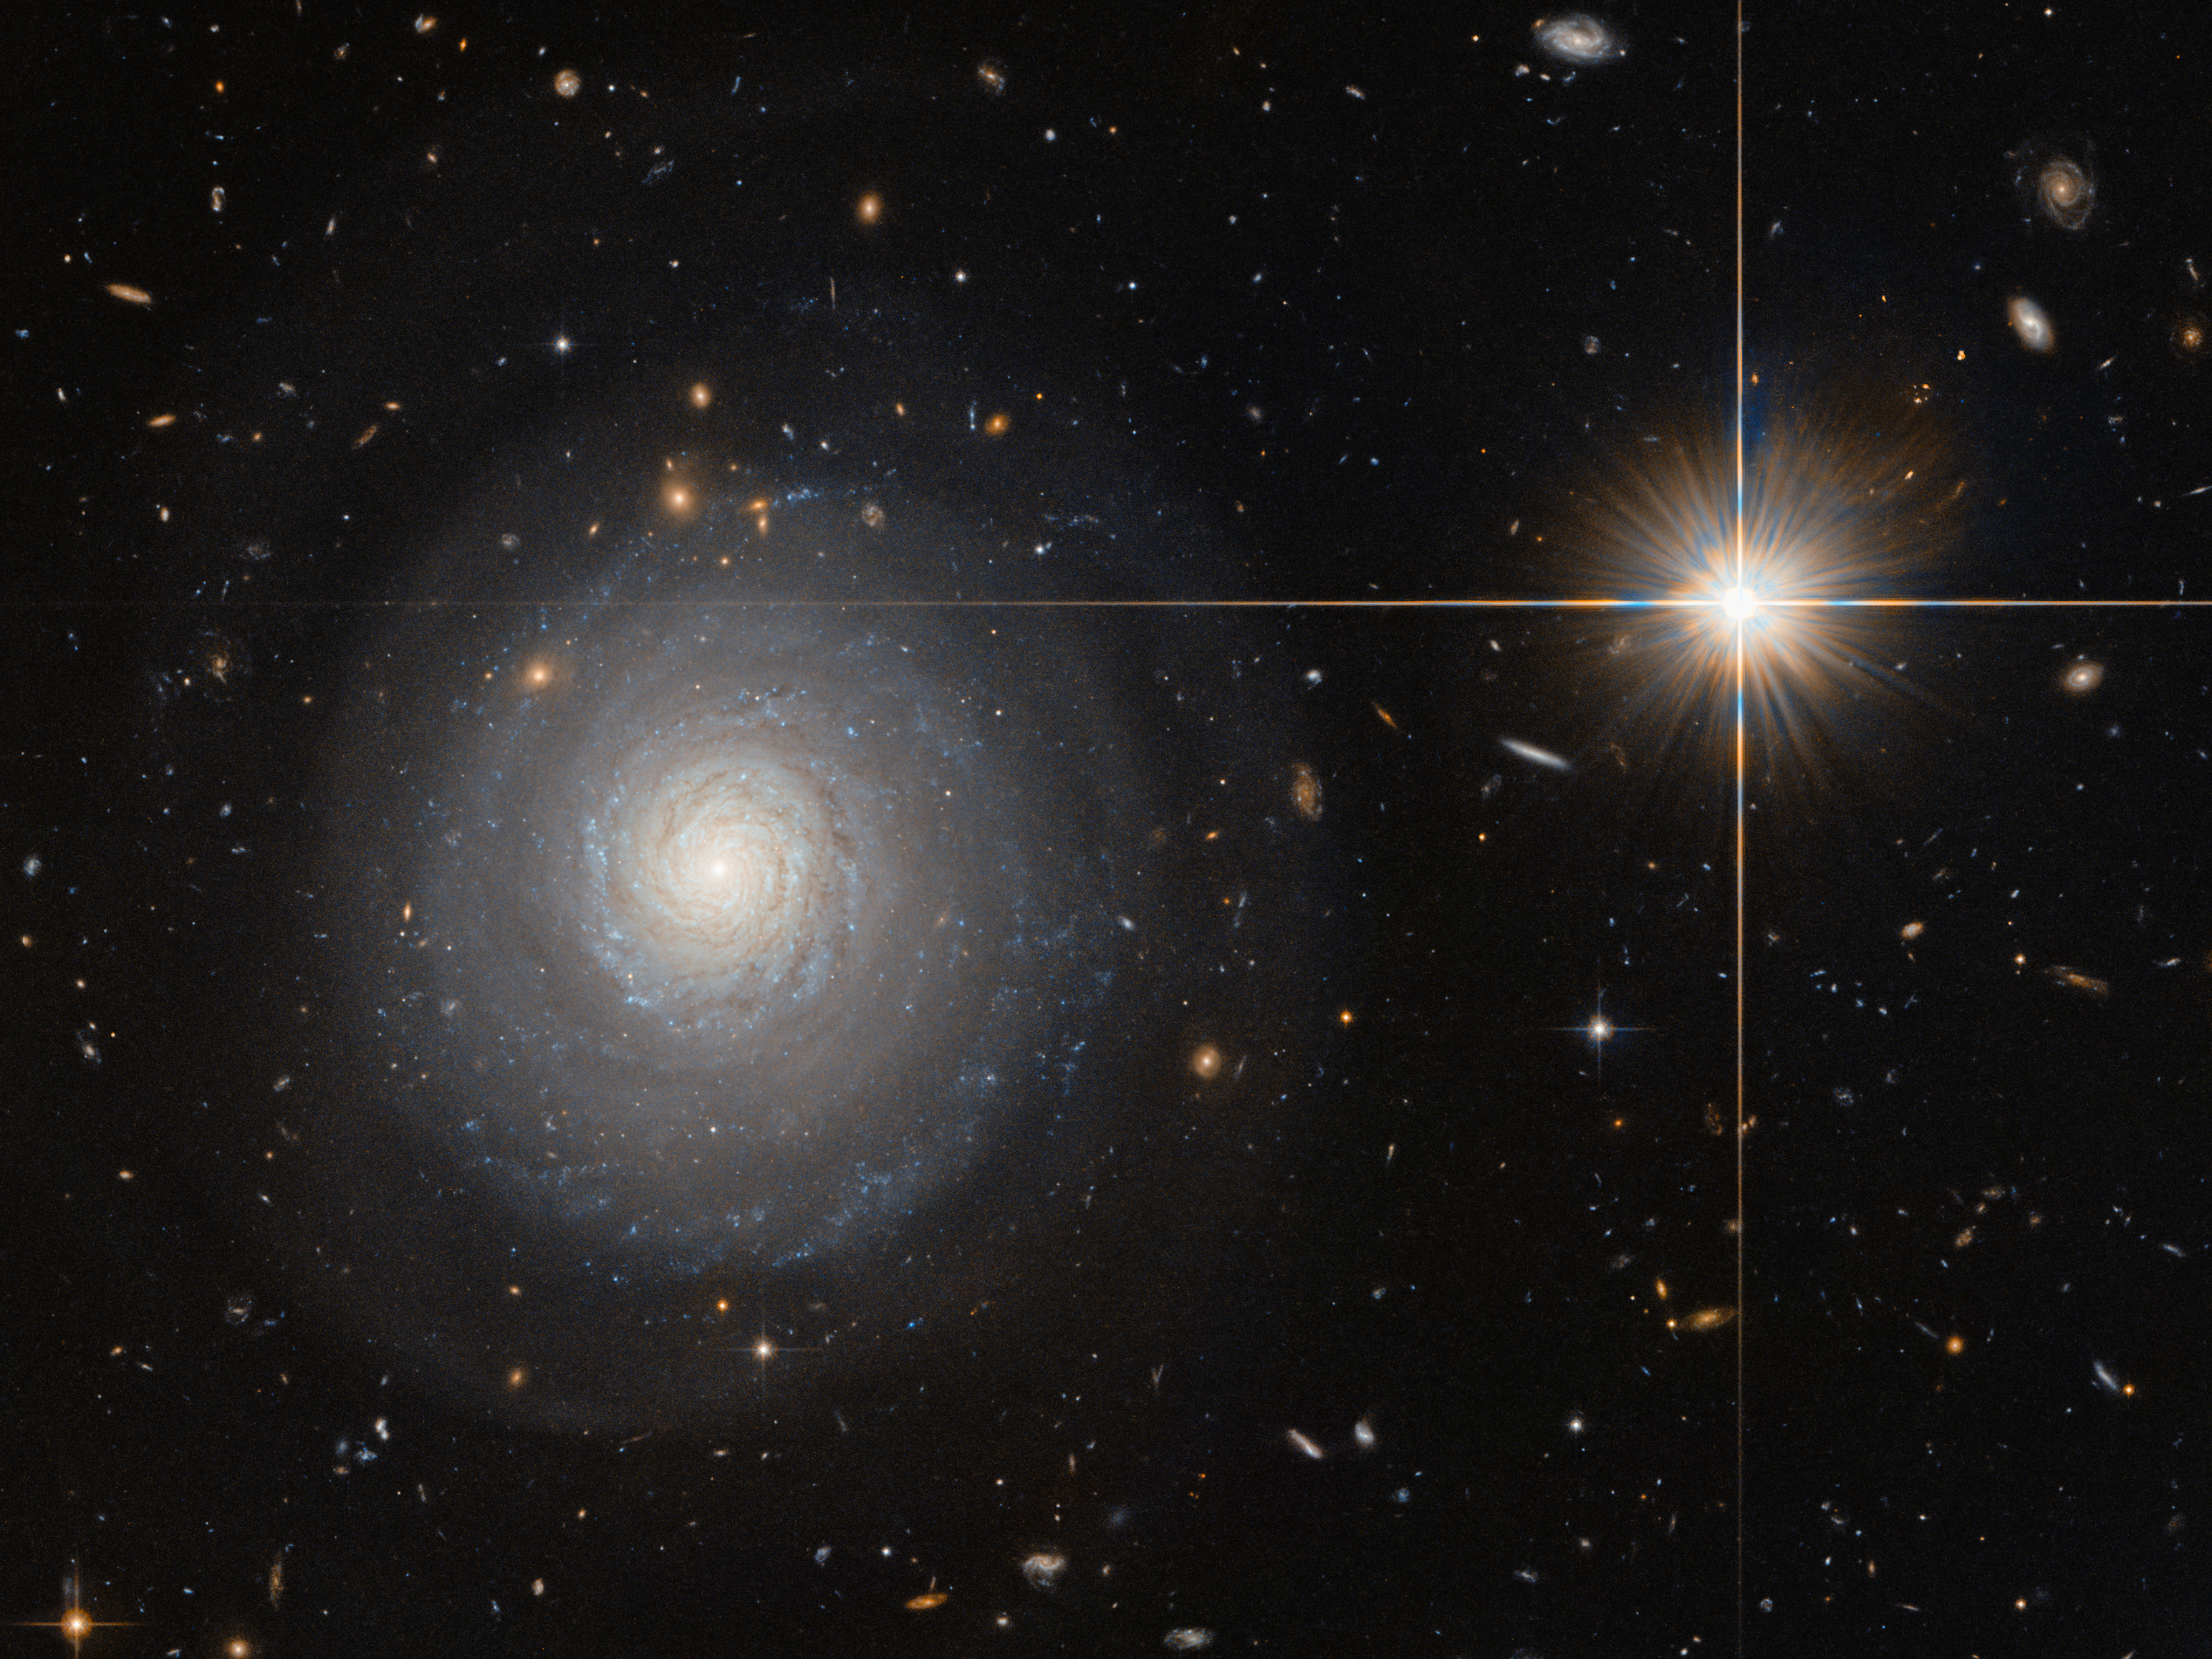 Face-on starburst spiral galaxy MCG+07-33-027 lies 300 million light-years from Earth in the constellation of Hercules. Click the image for a full-size version. Image credit: ESA/Hubble & NASA and N. Grogin (STScI).